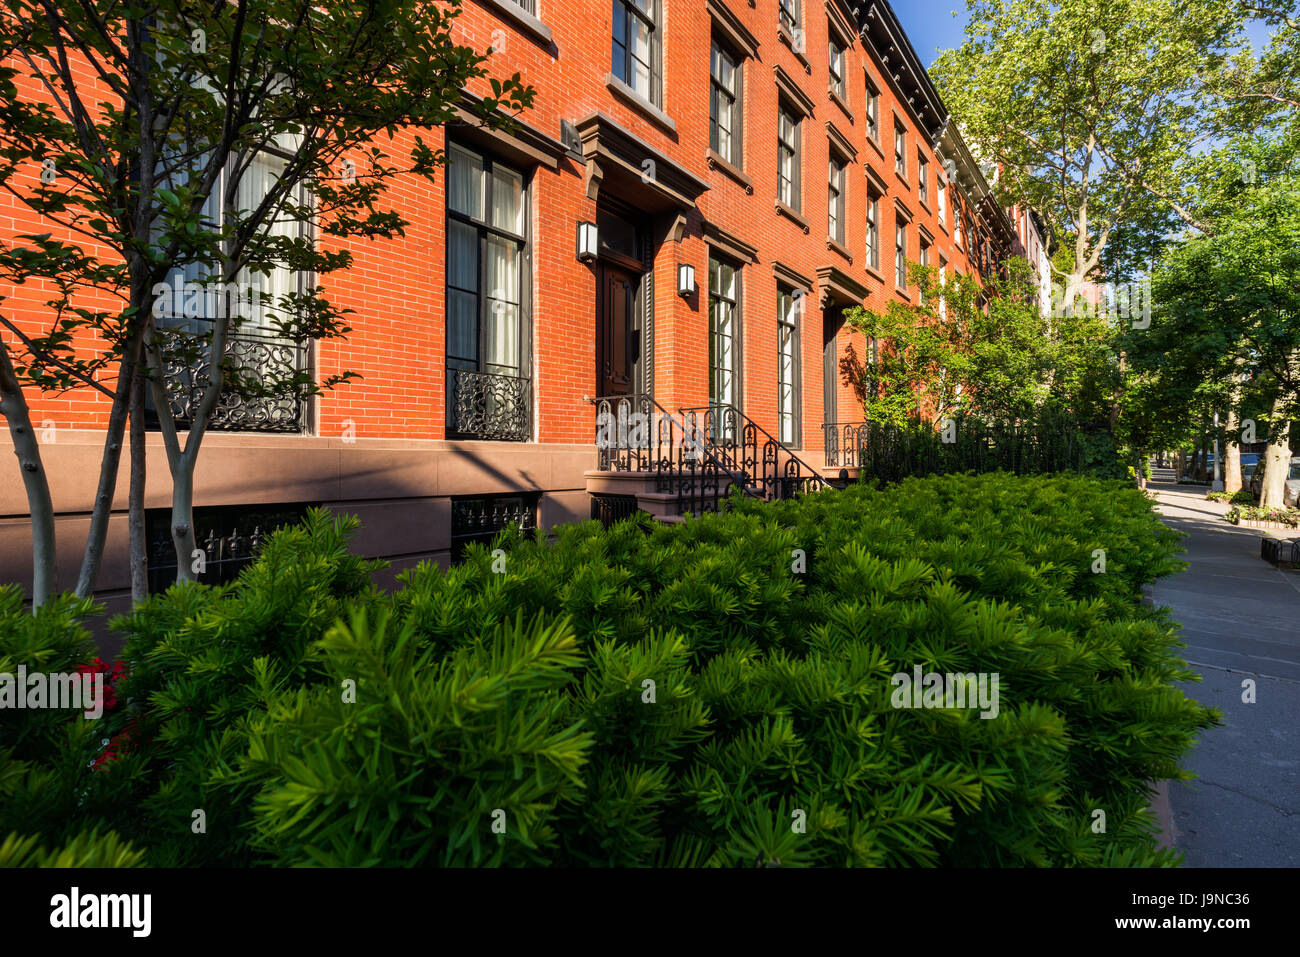 Nineteenth century townhouses with brick facades and wrought iron railings. Summer in Chelsea. Manhattan, New York Stock Photo